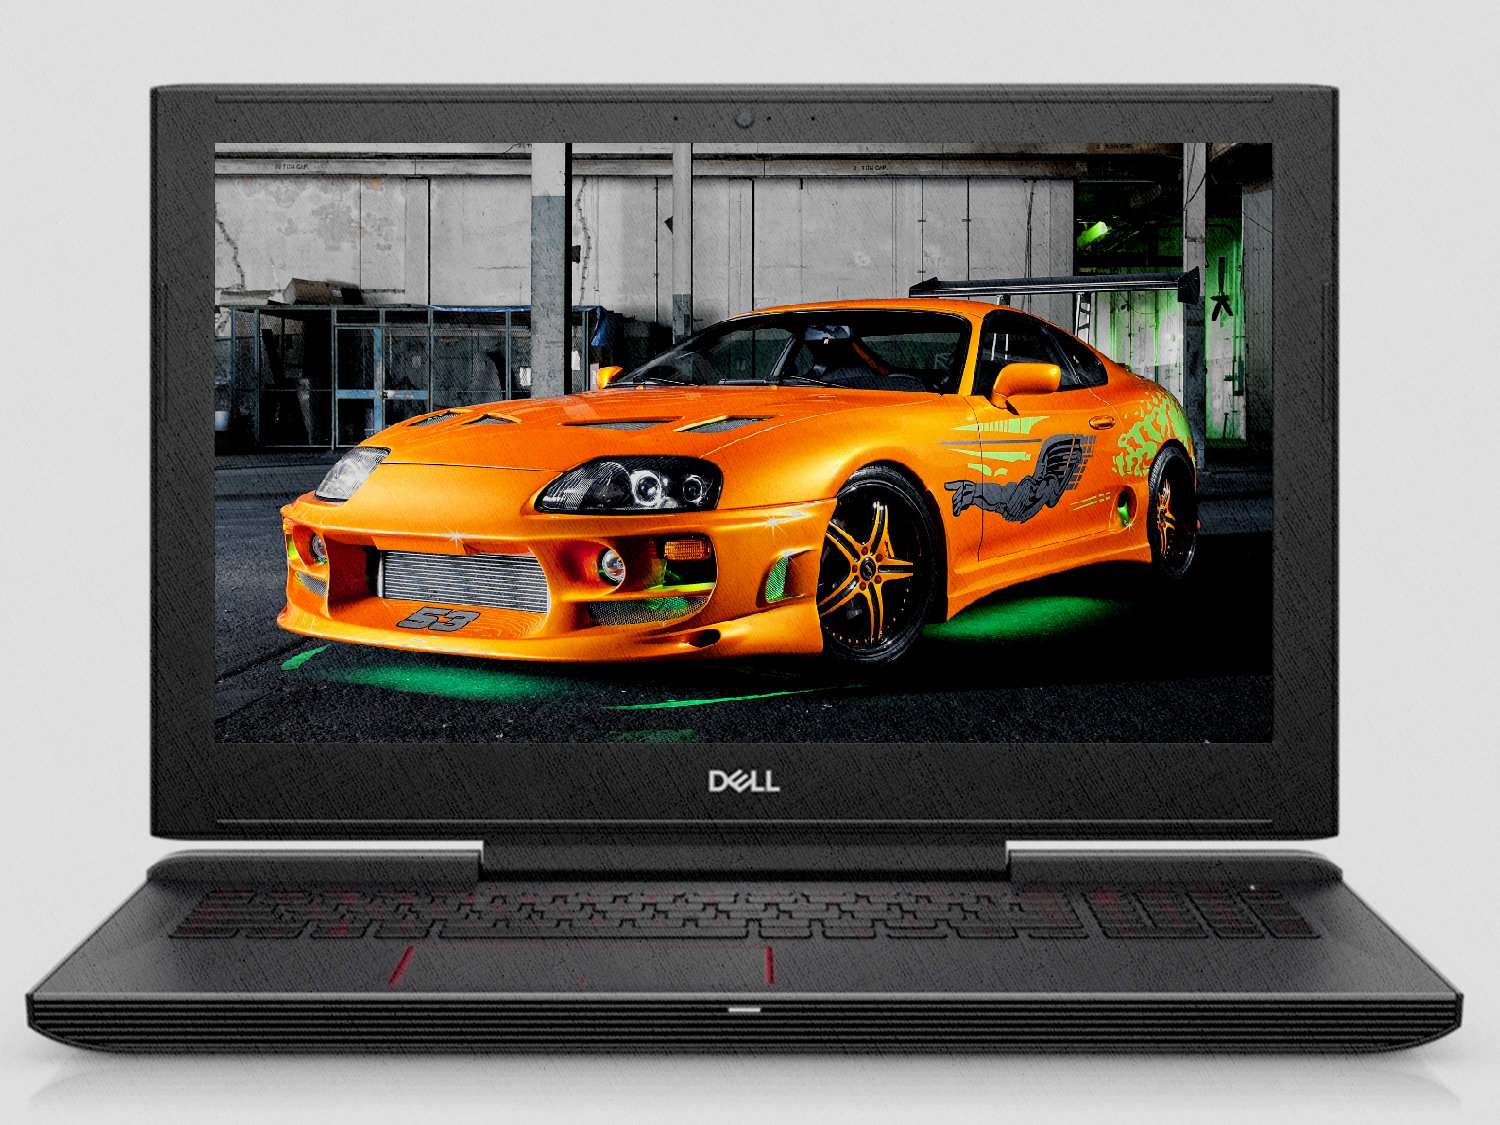 Dell G5 5587 Red G515-7367